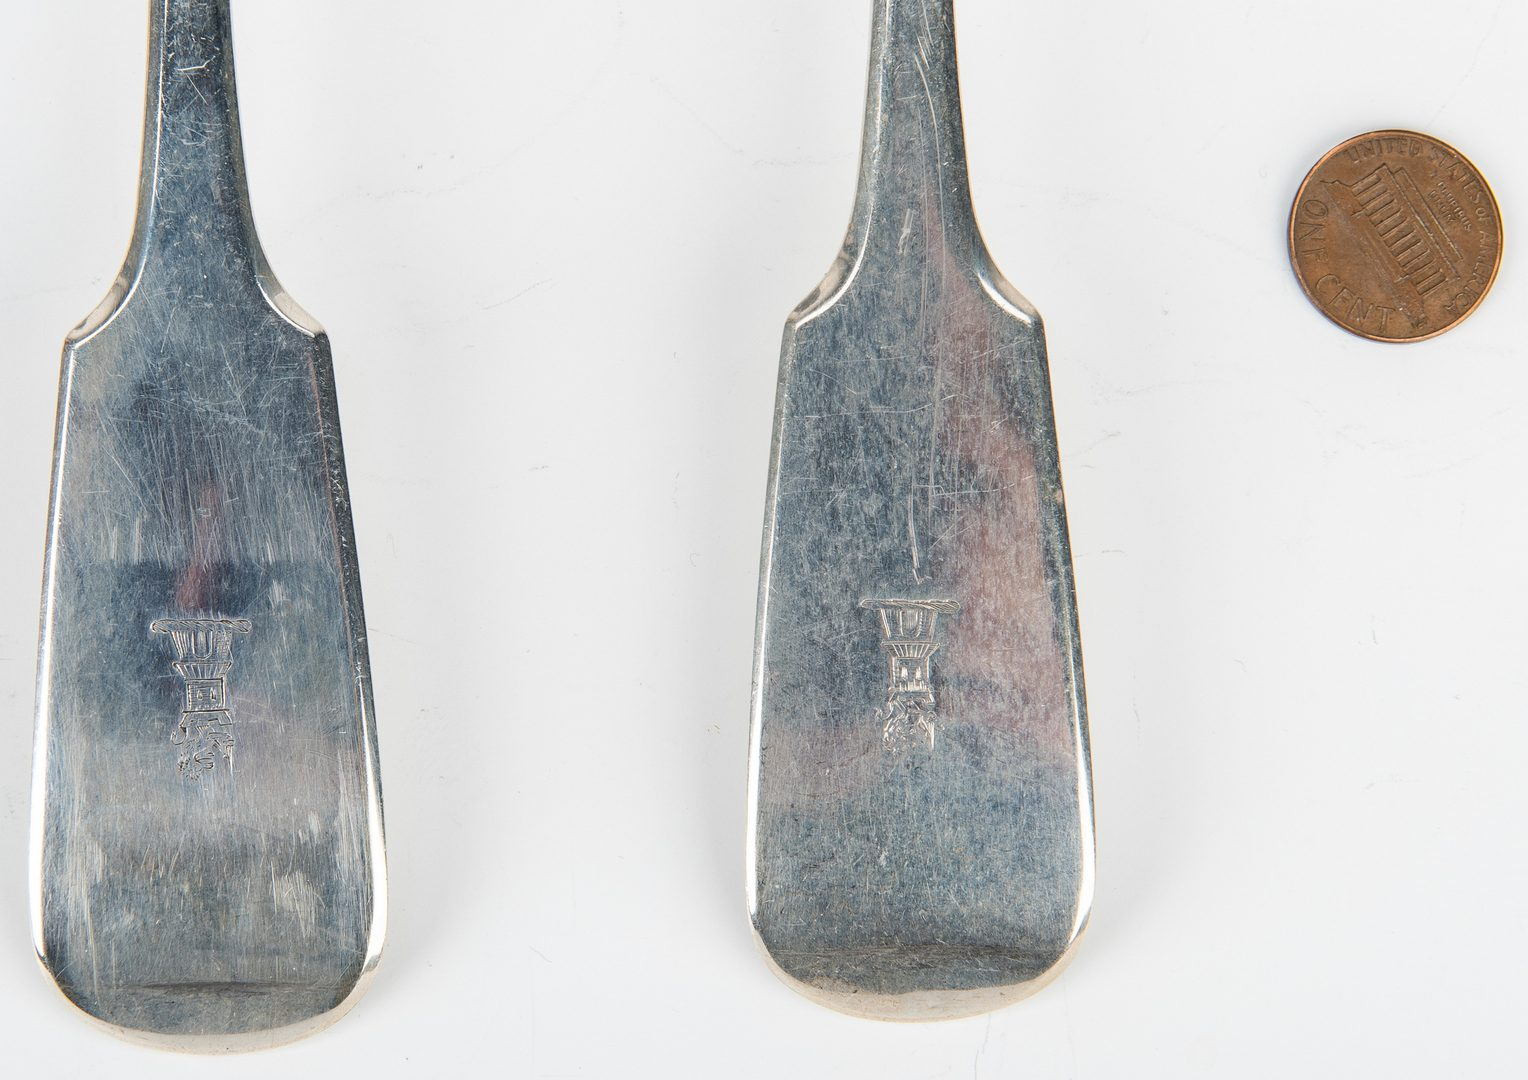 Lot 197: 7 British Serving Pieces, incl. Cheese Scoop